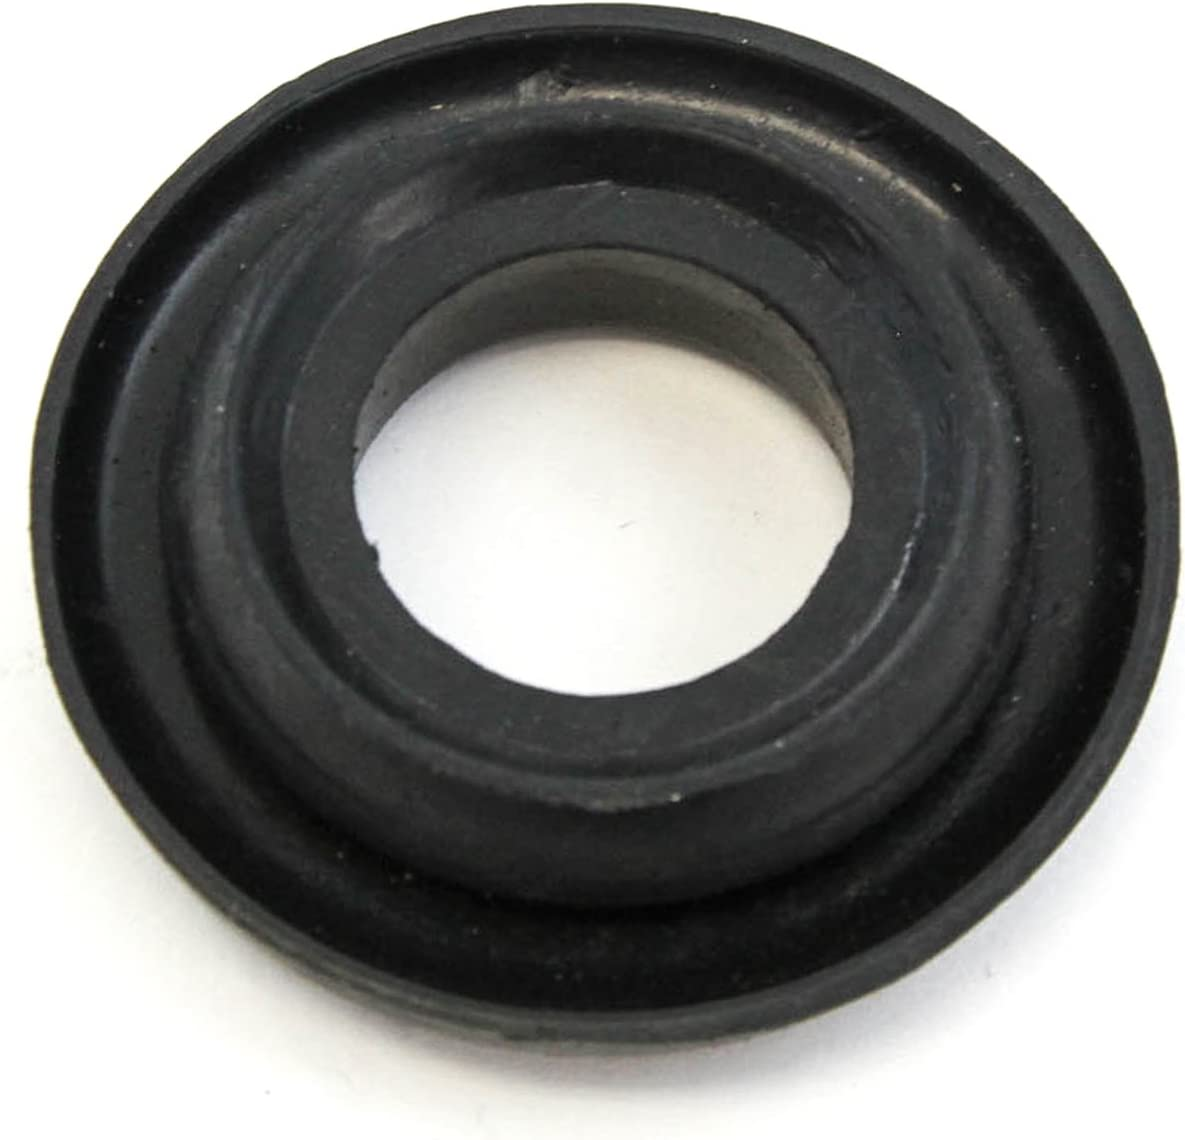 7//8 Inch Inside Diameter Fits 1-1//2 Inch Opening Non Leak No Crack Heat Resistant Red Hound Auto 200 Universal Rubber Grommet 2 Inch Outside